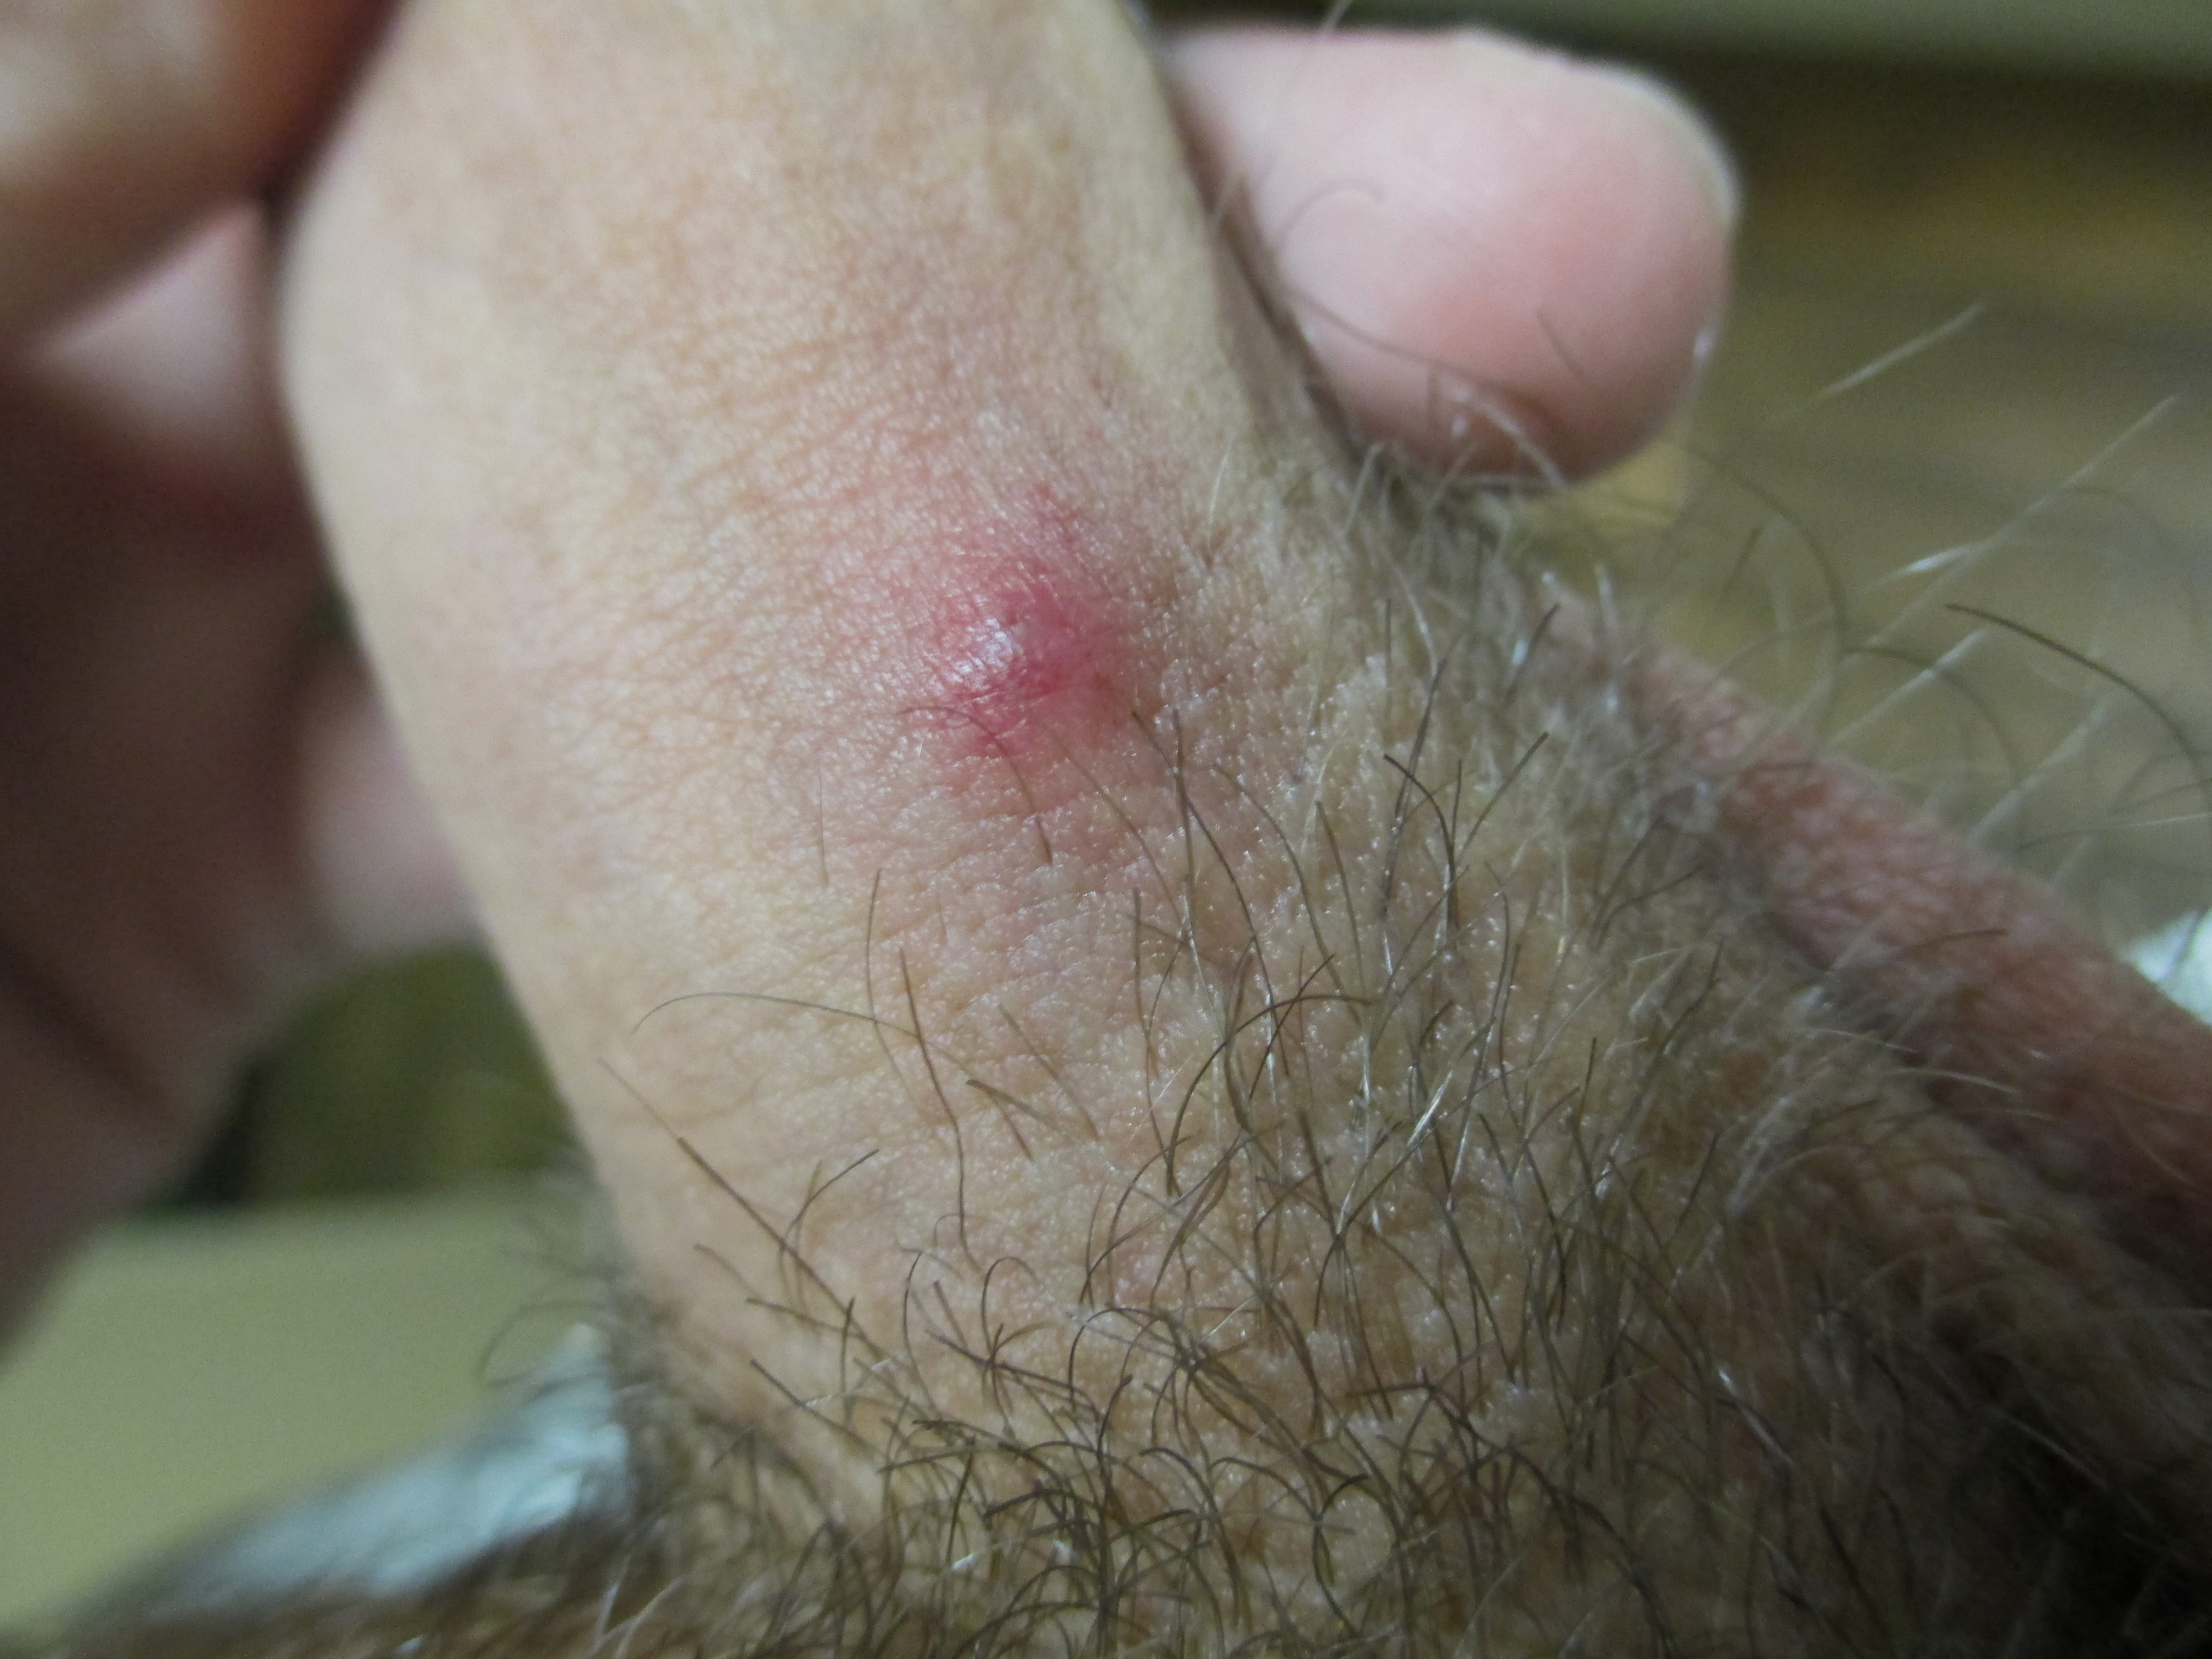 follicle on penis